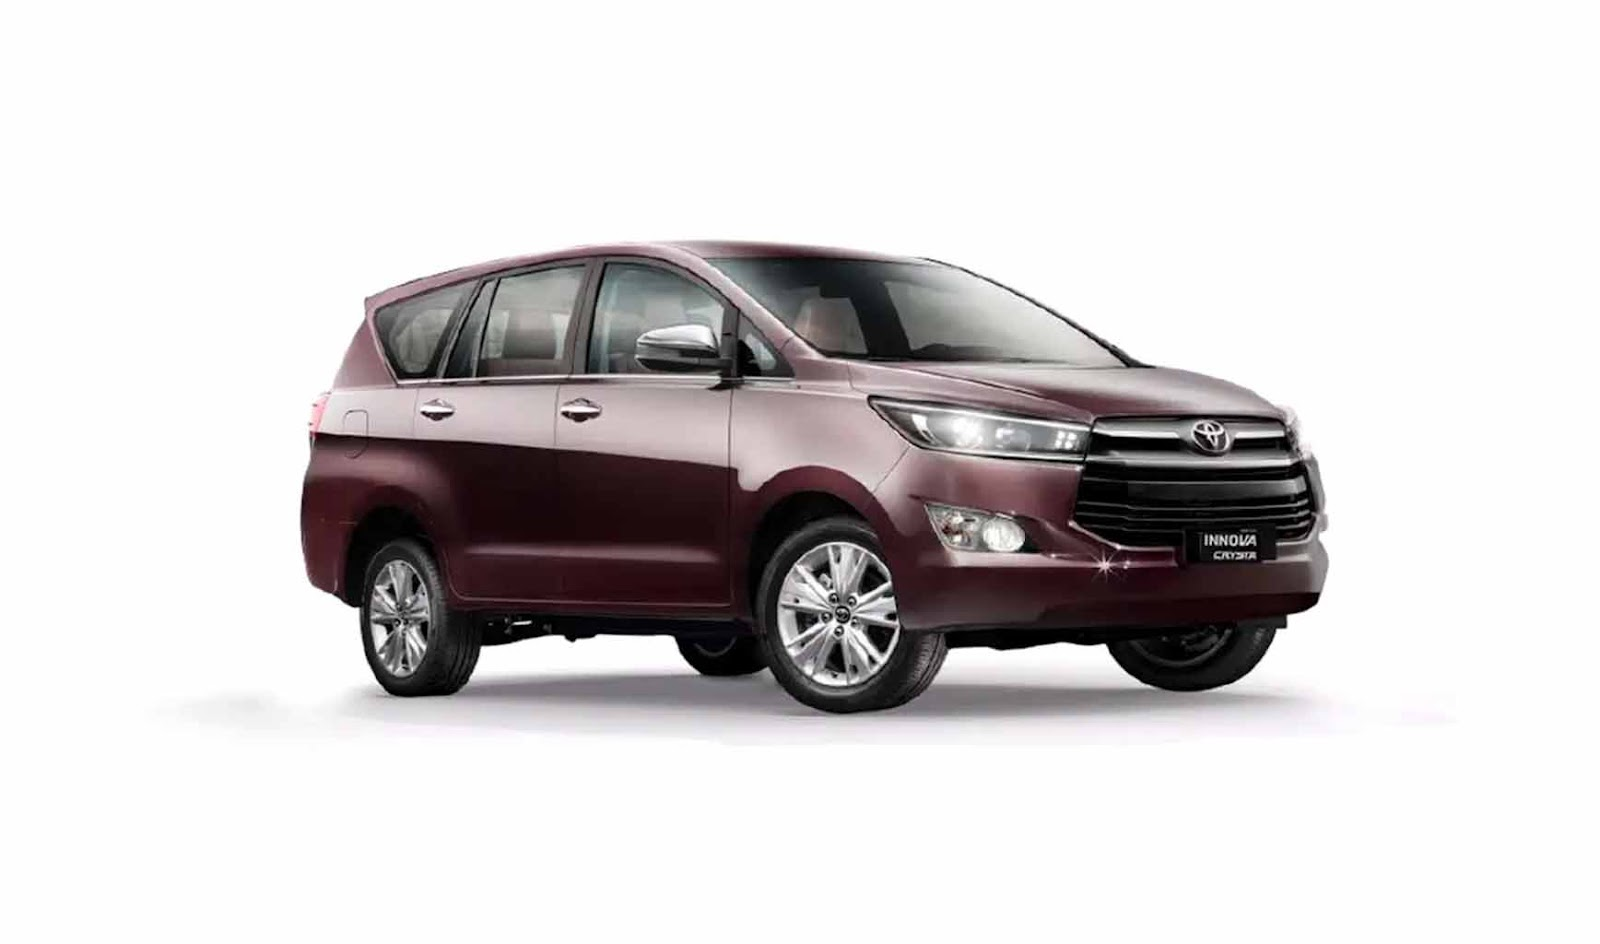 Best Family Cars to Buy in India